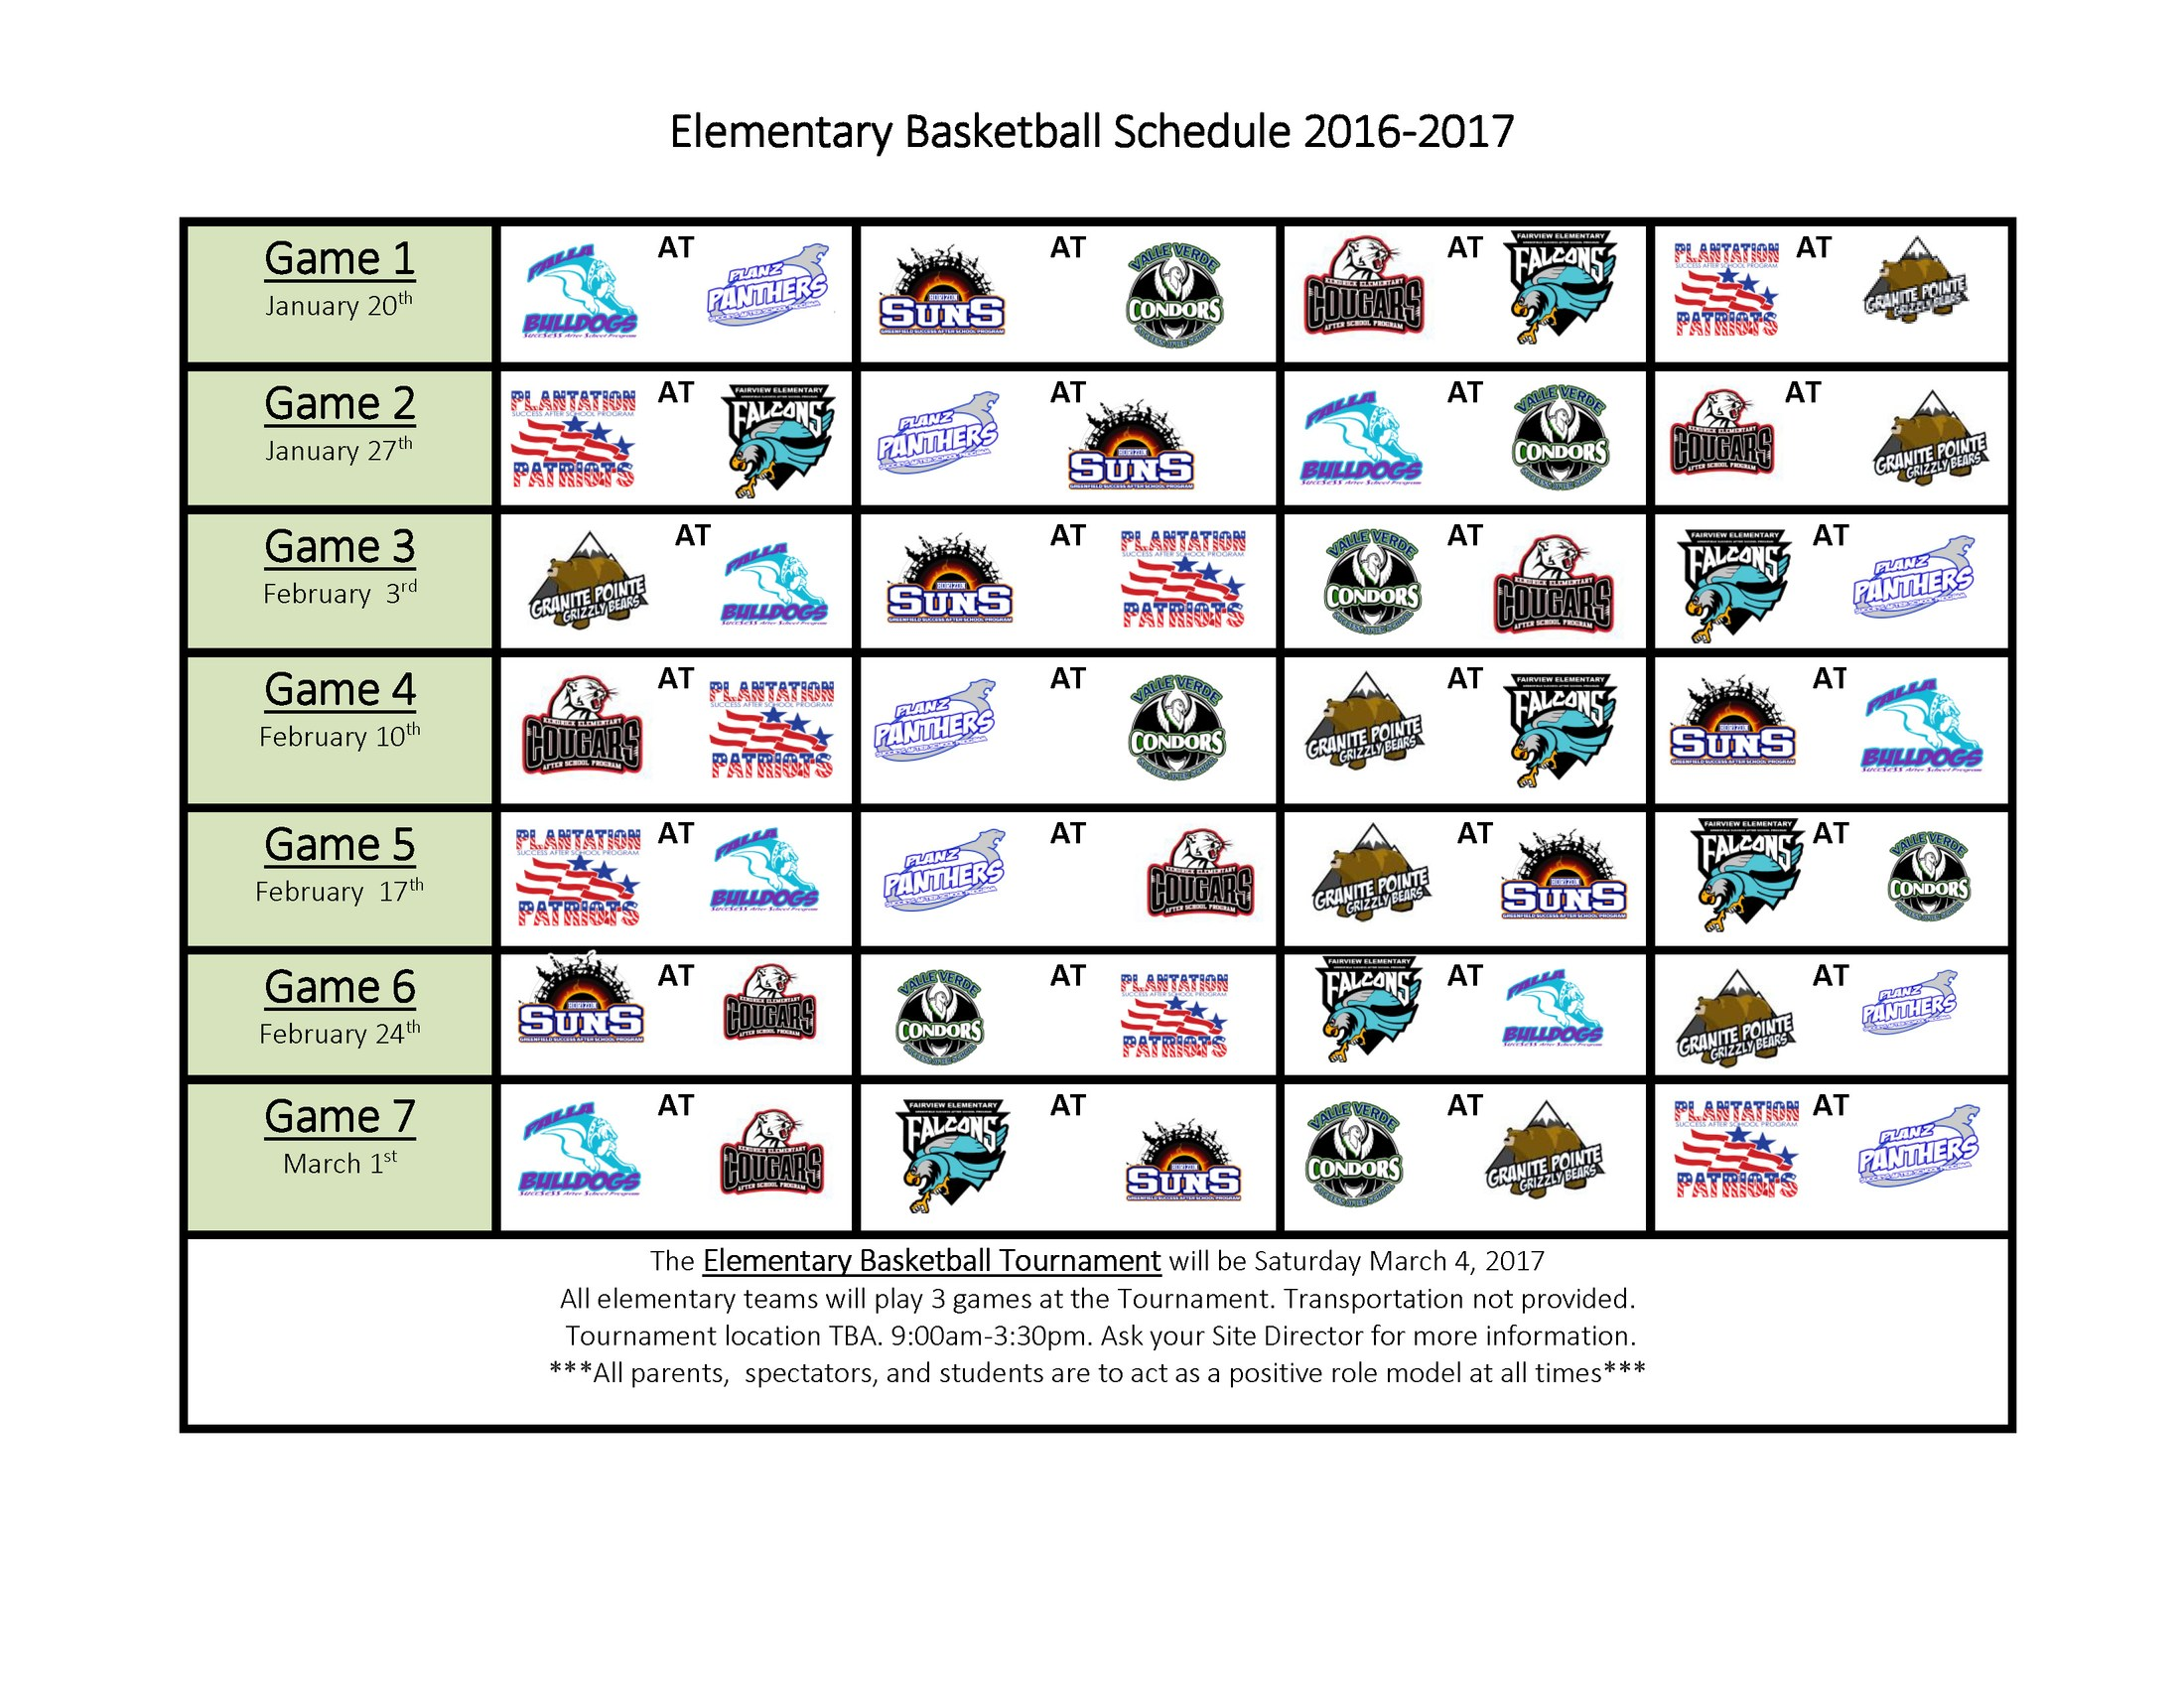 Elementary Basketball Schedule for the 2016 2017 school year.